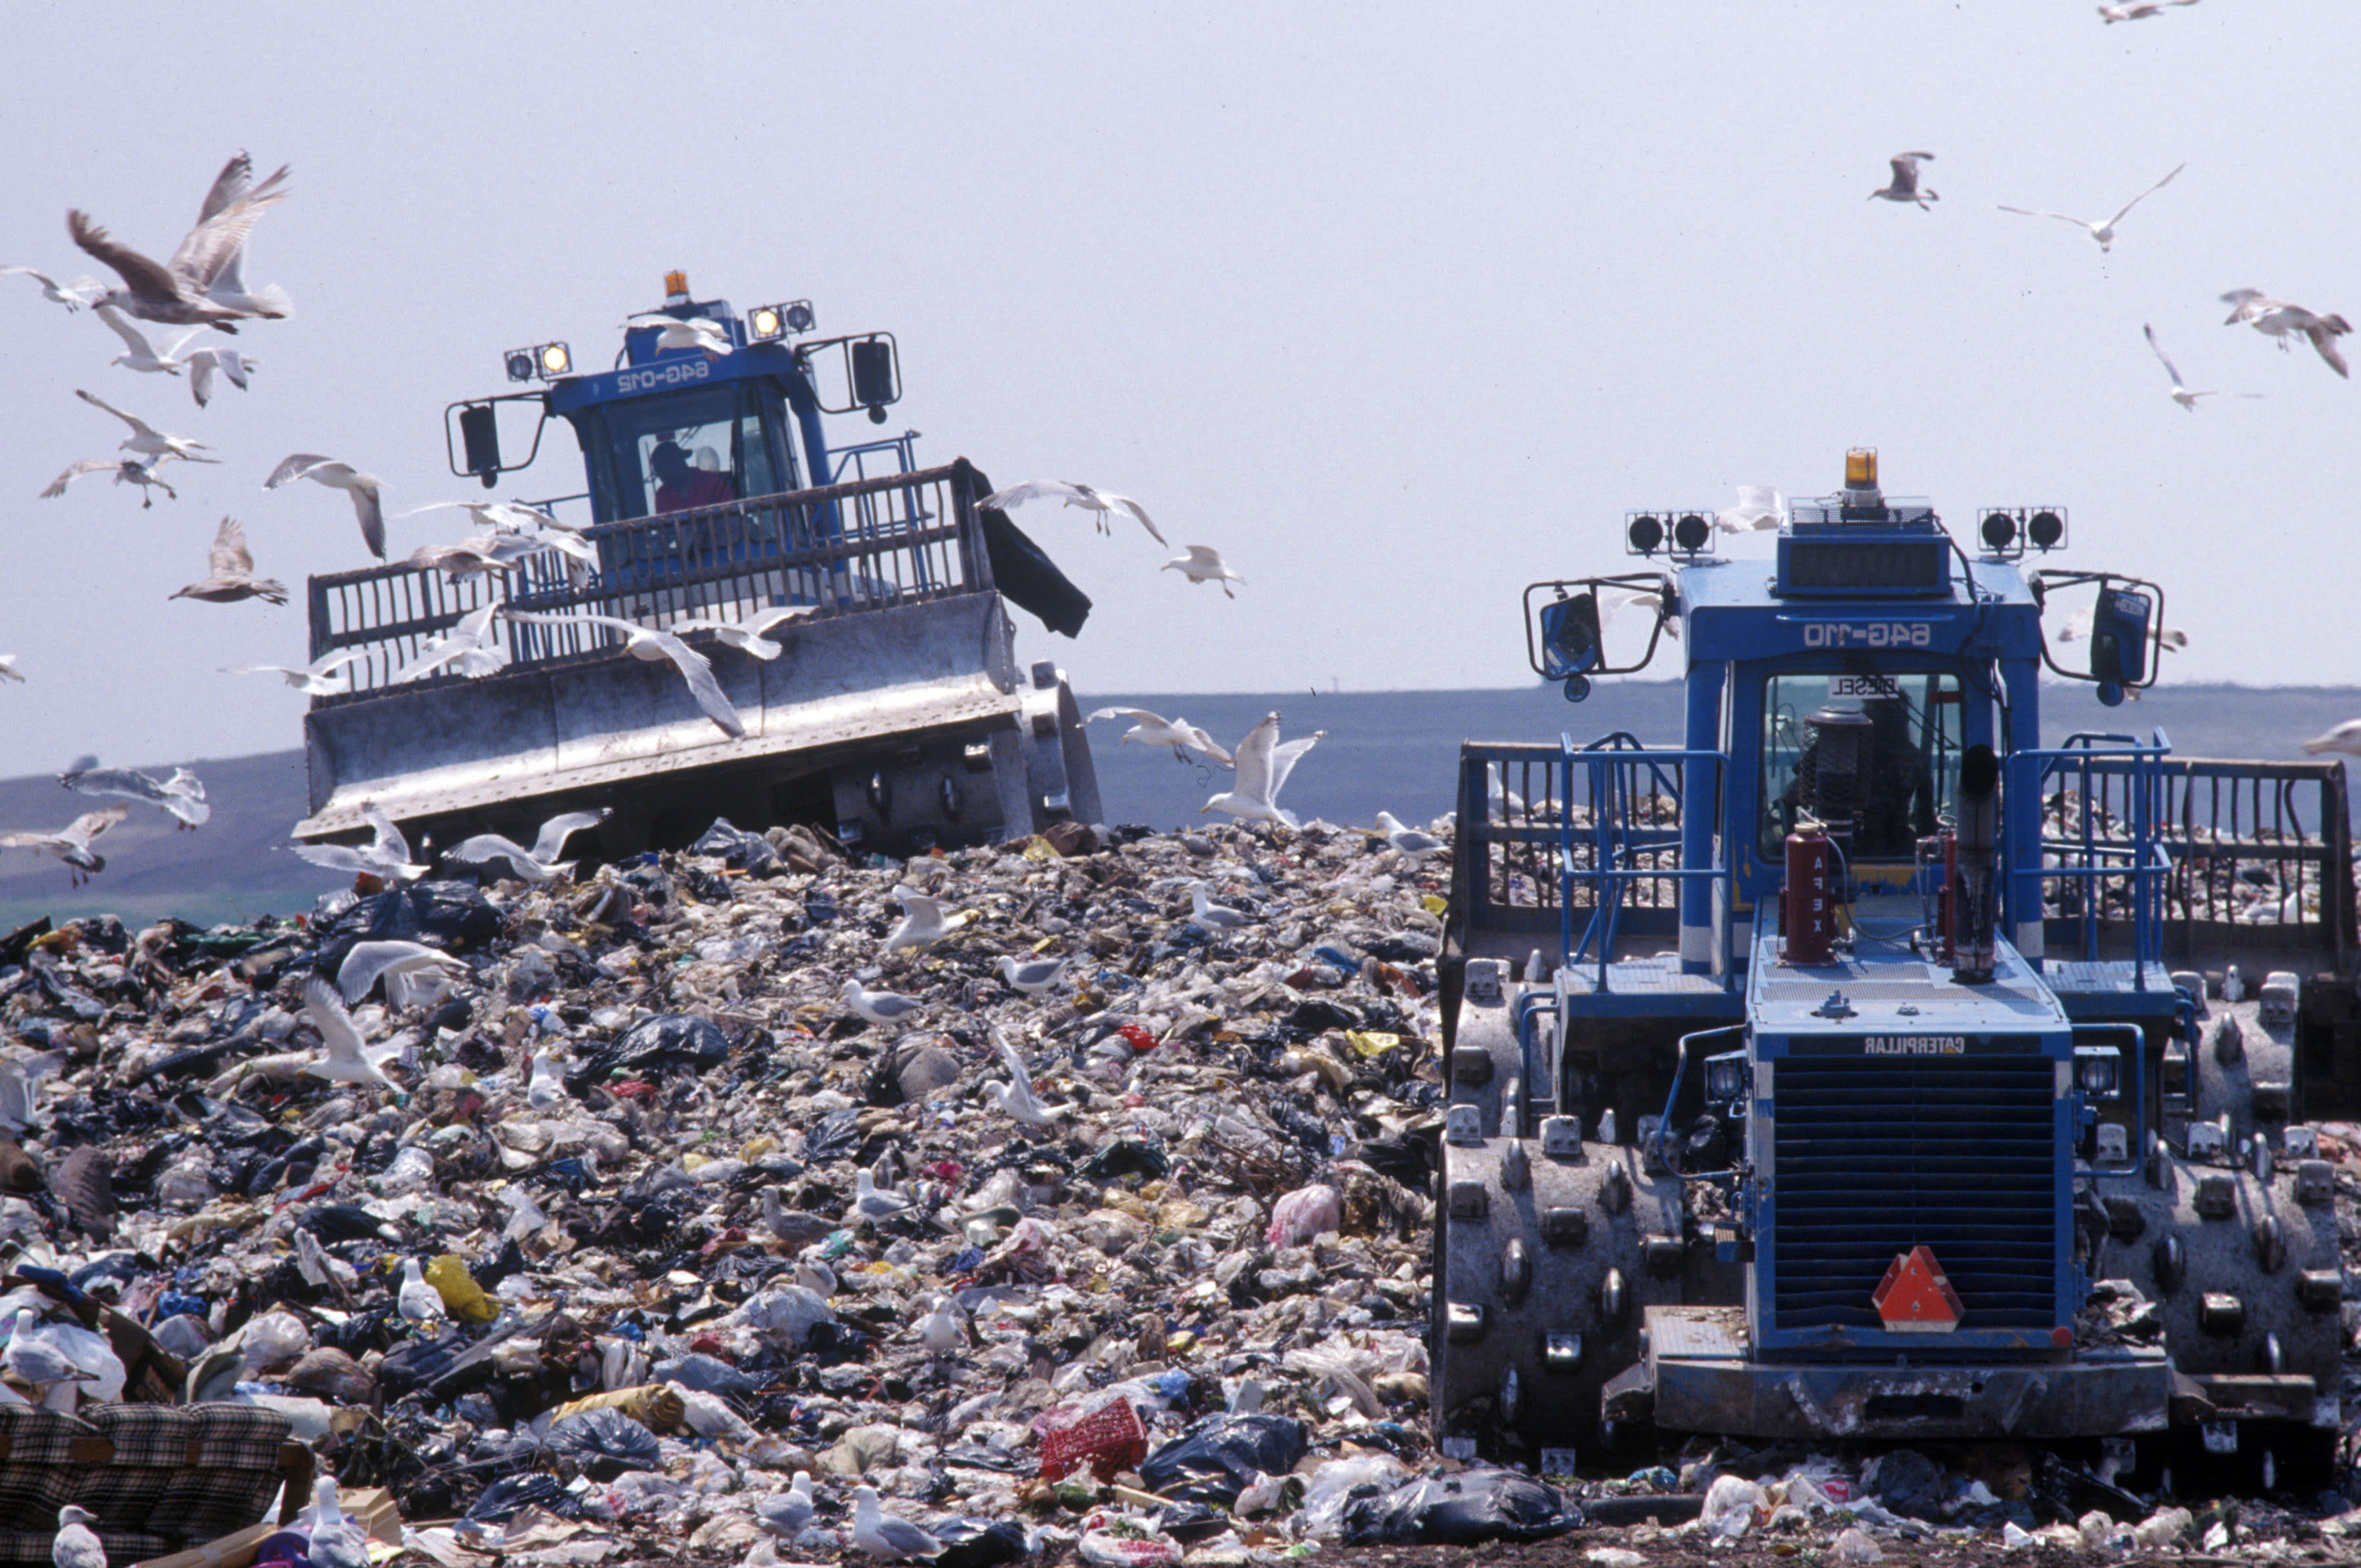 America is drowning in garbage. Now robots are being put on duty to help solve the recycling crisis